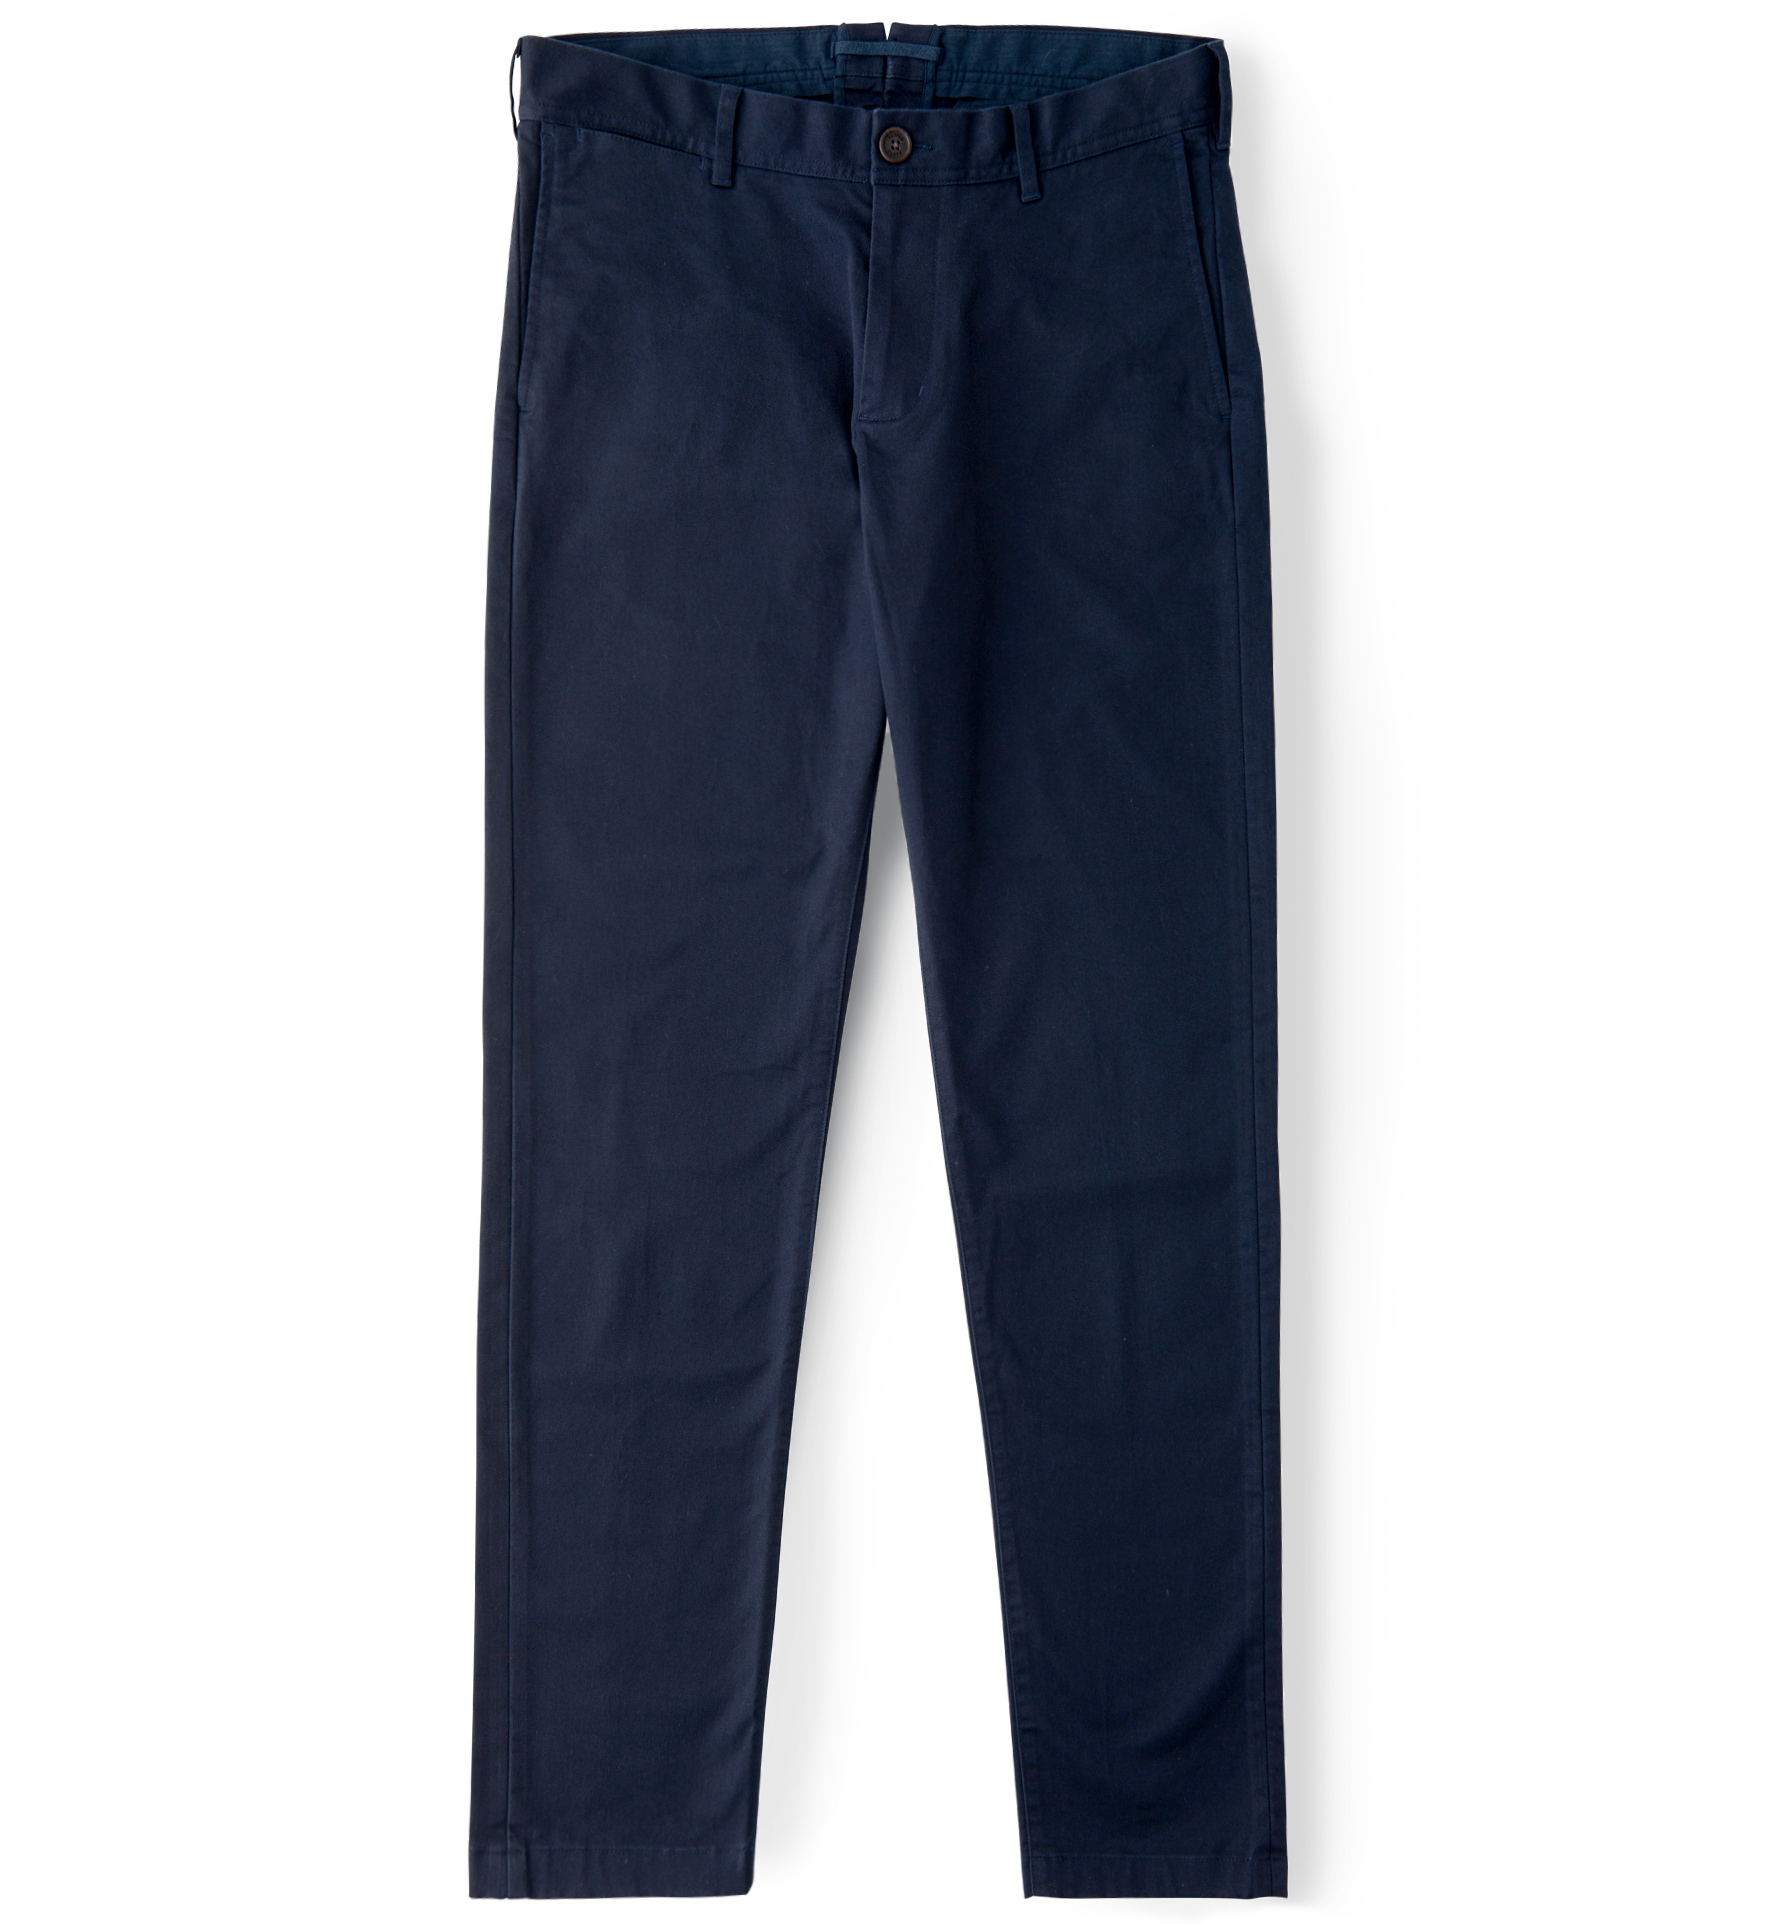 Zoom Image of Bowery Navy Stretch Heavy Cotton Chino